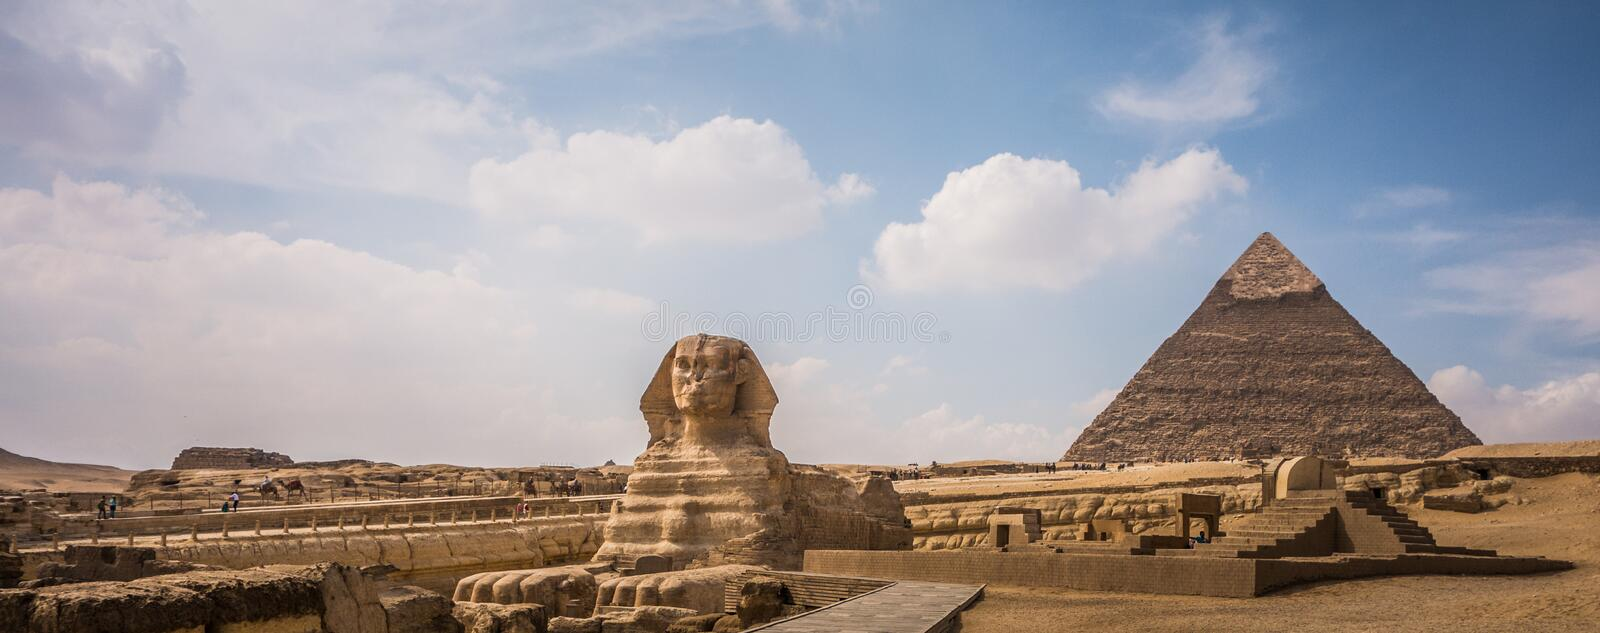 Pyramides de Gizeh avec le sphinx, Egypte photo stock